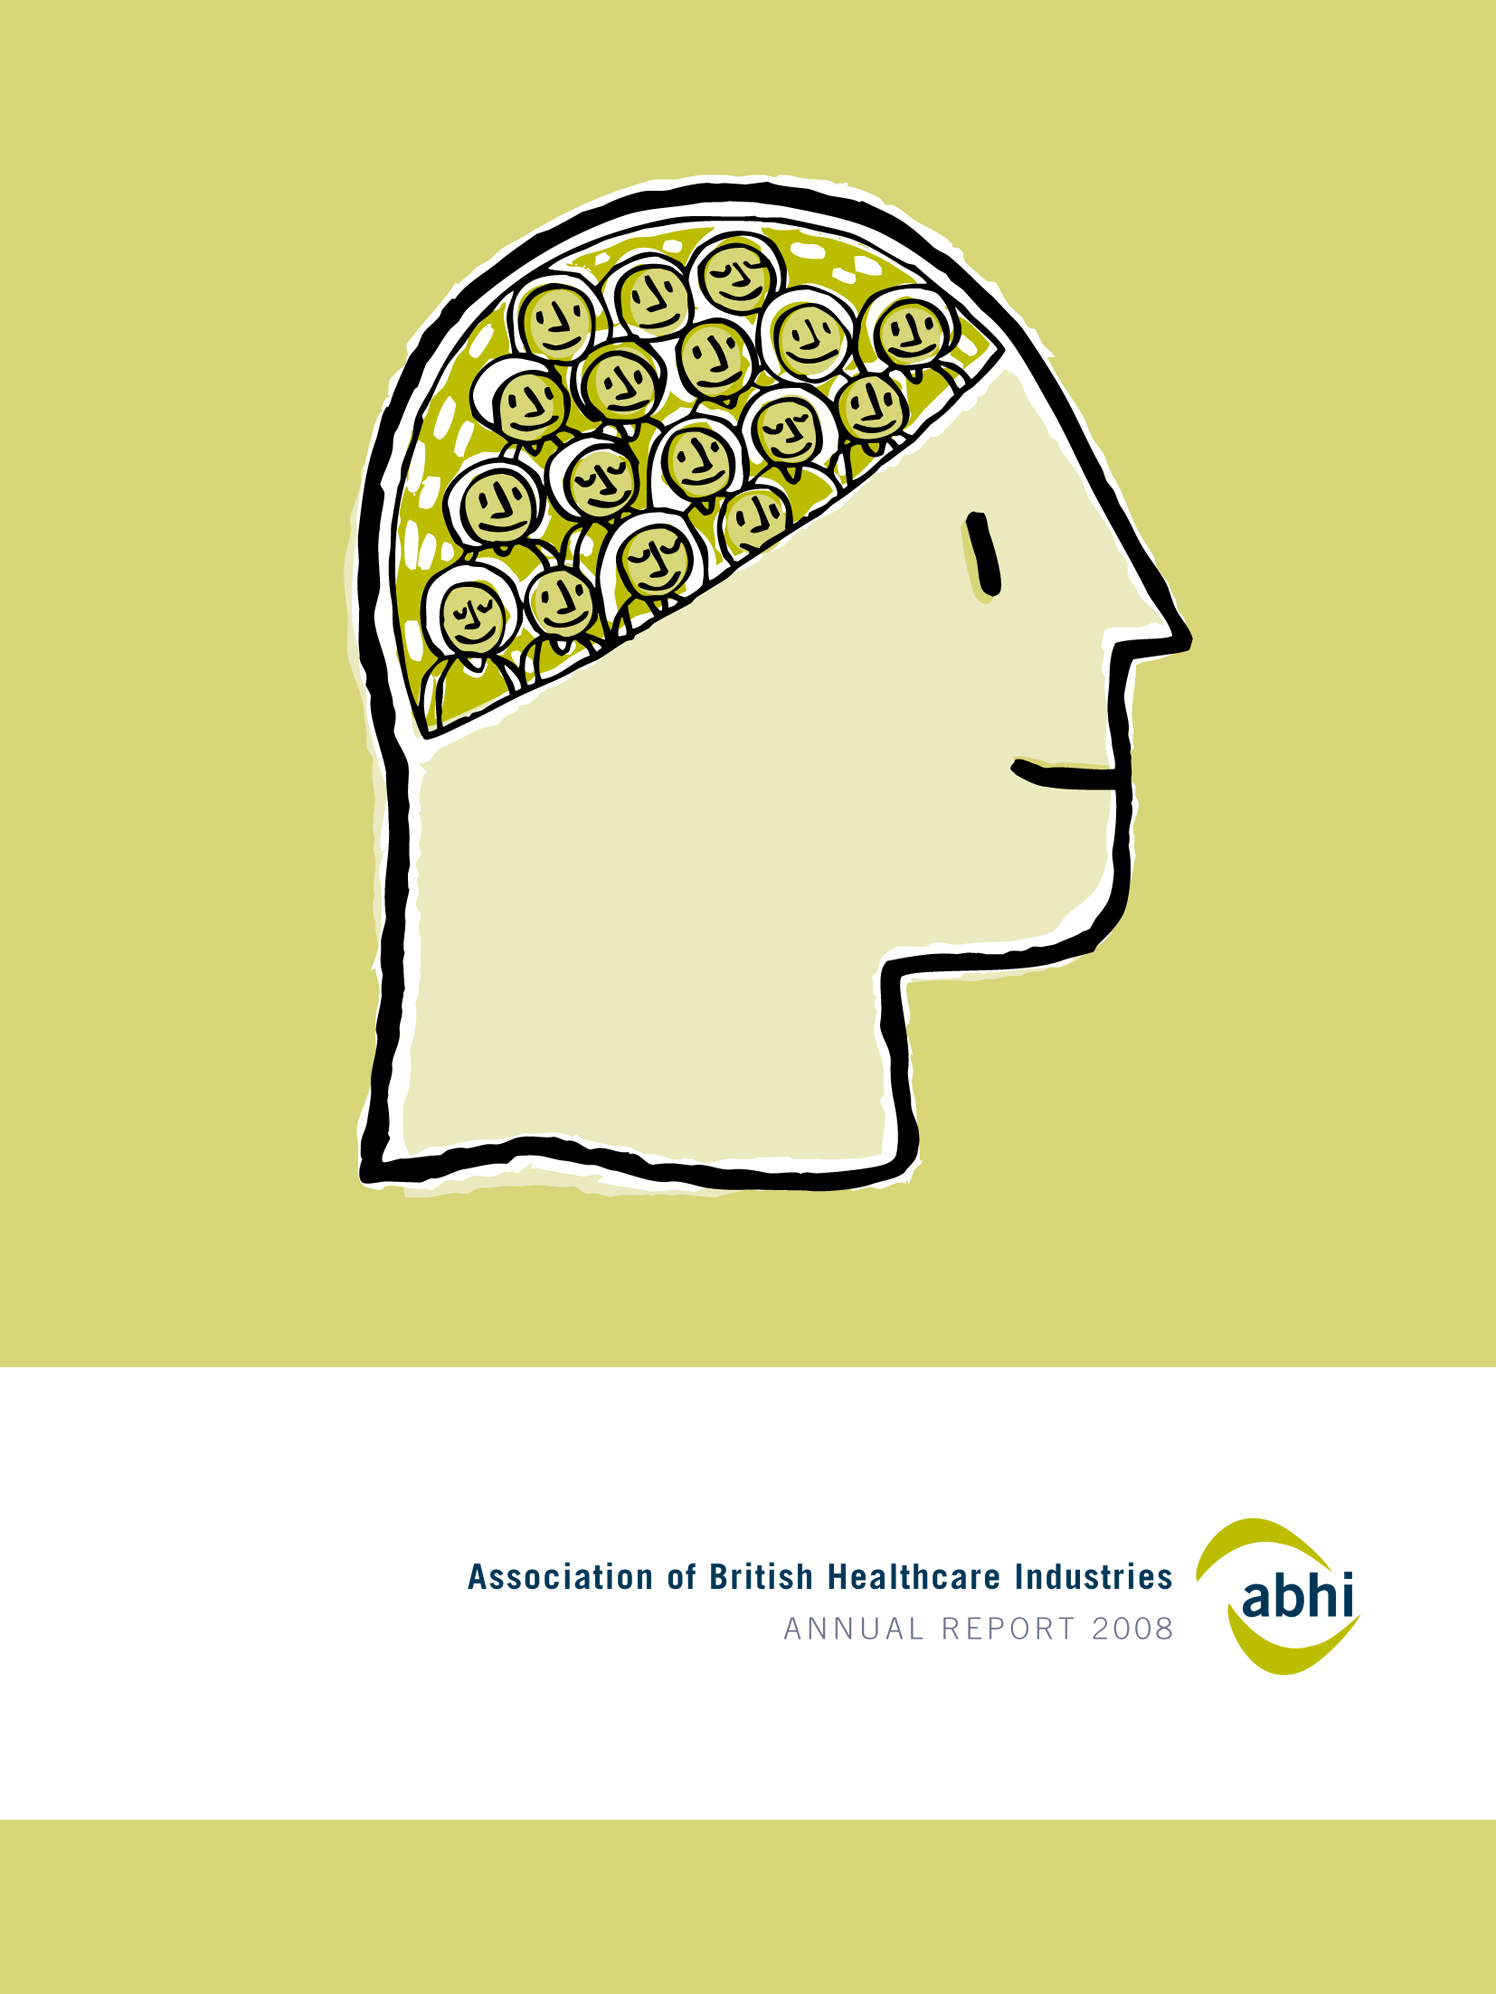 Association of British Healthcare Industries